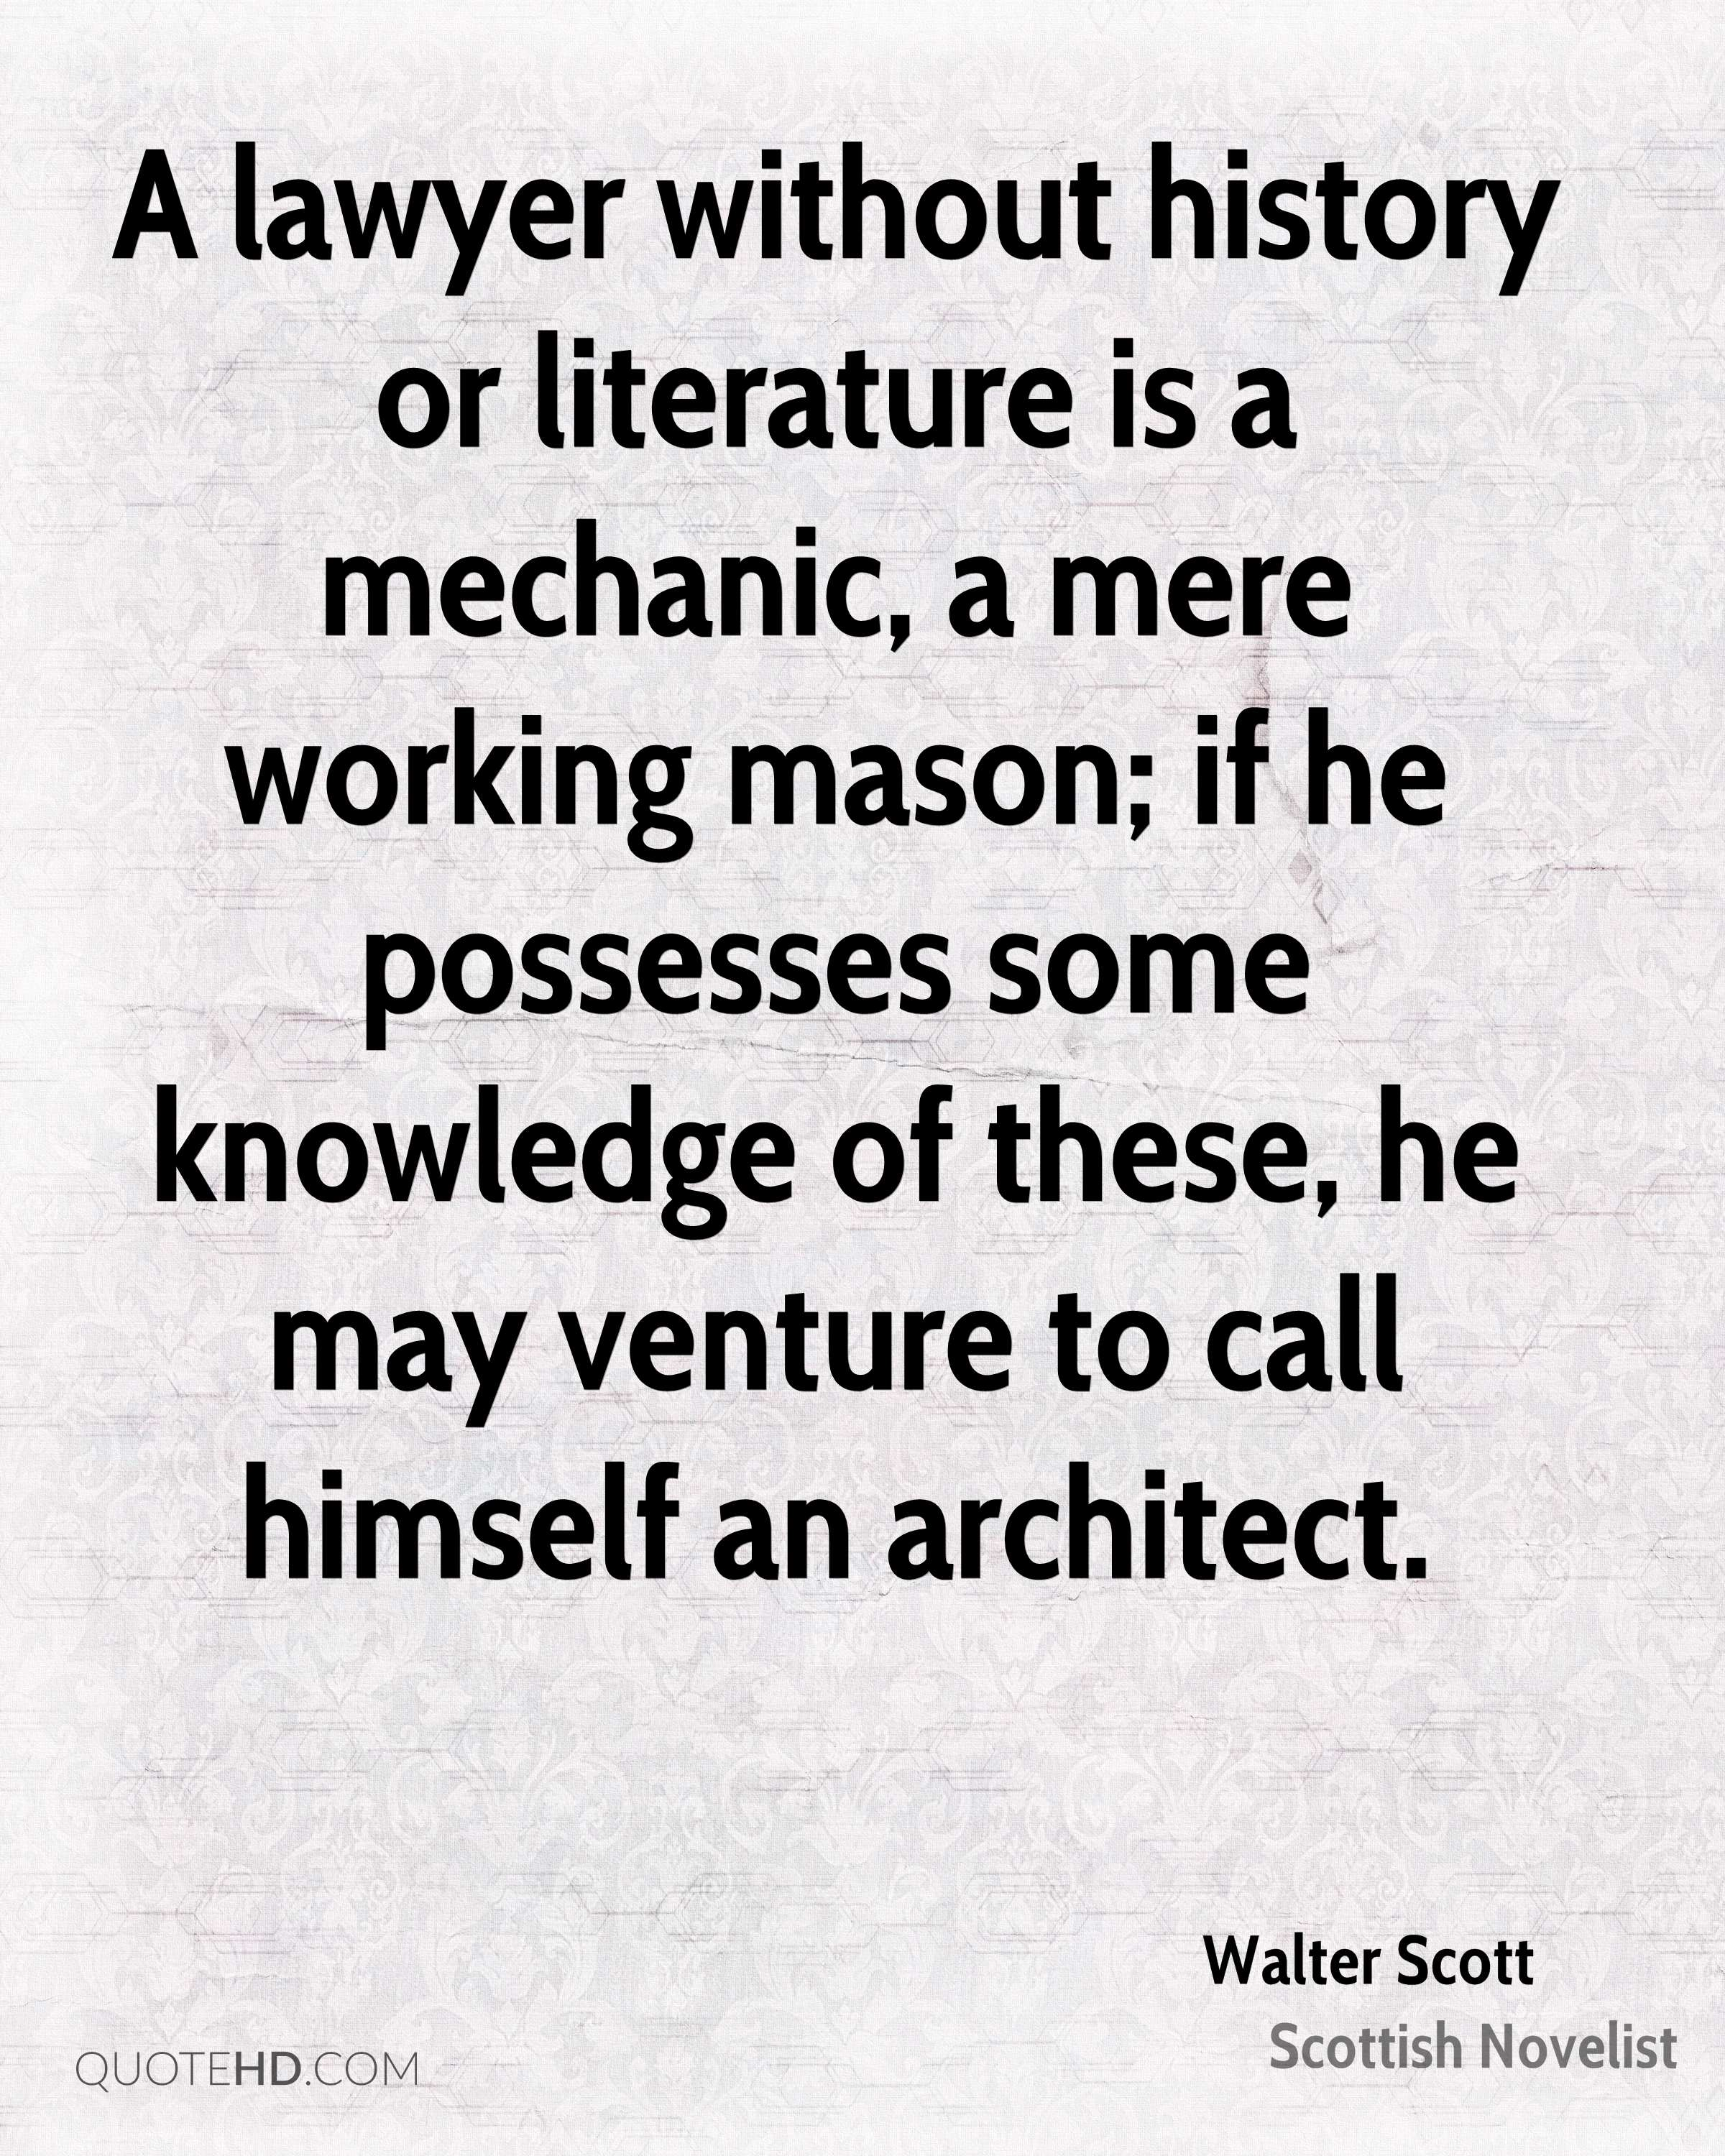 A lawyer without history or literature is a mechanic, a mere working mason; if he possesses some knowledge of these, he may venture to call himself an architect.